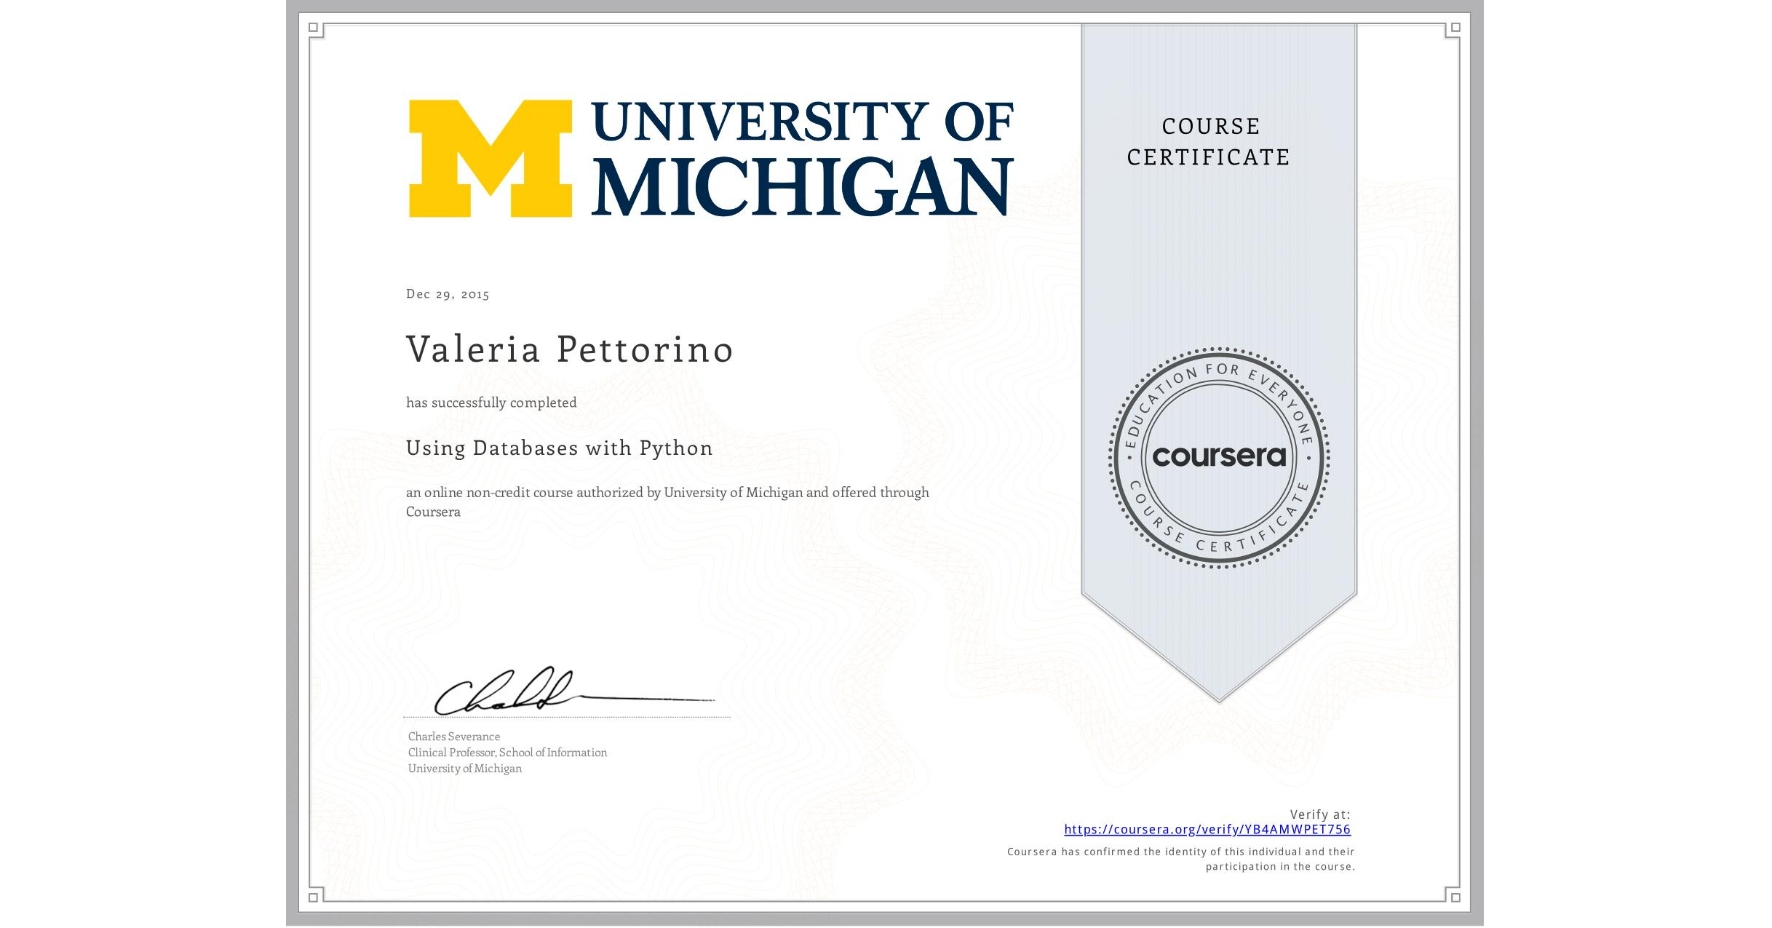 View certificate for Valeria Pettorino, Using Databases with Python, an online non-credit course authorized by University of Michigan and offered through Coursera